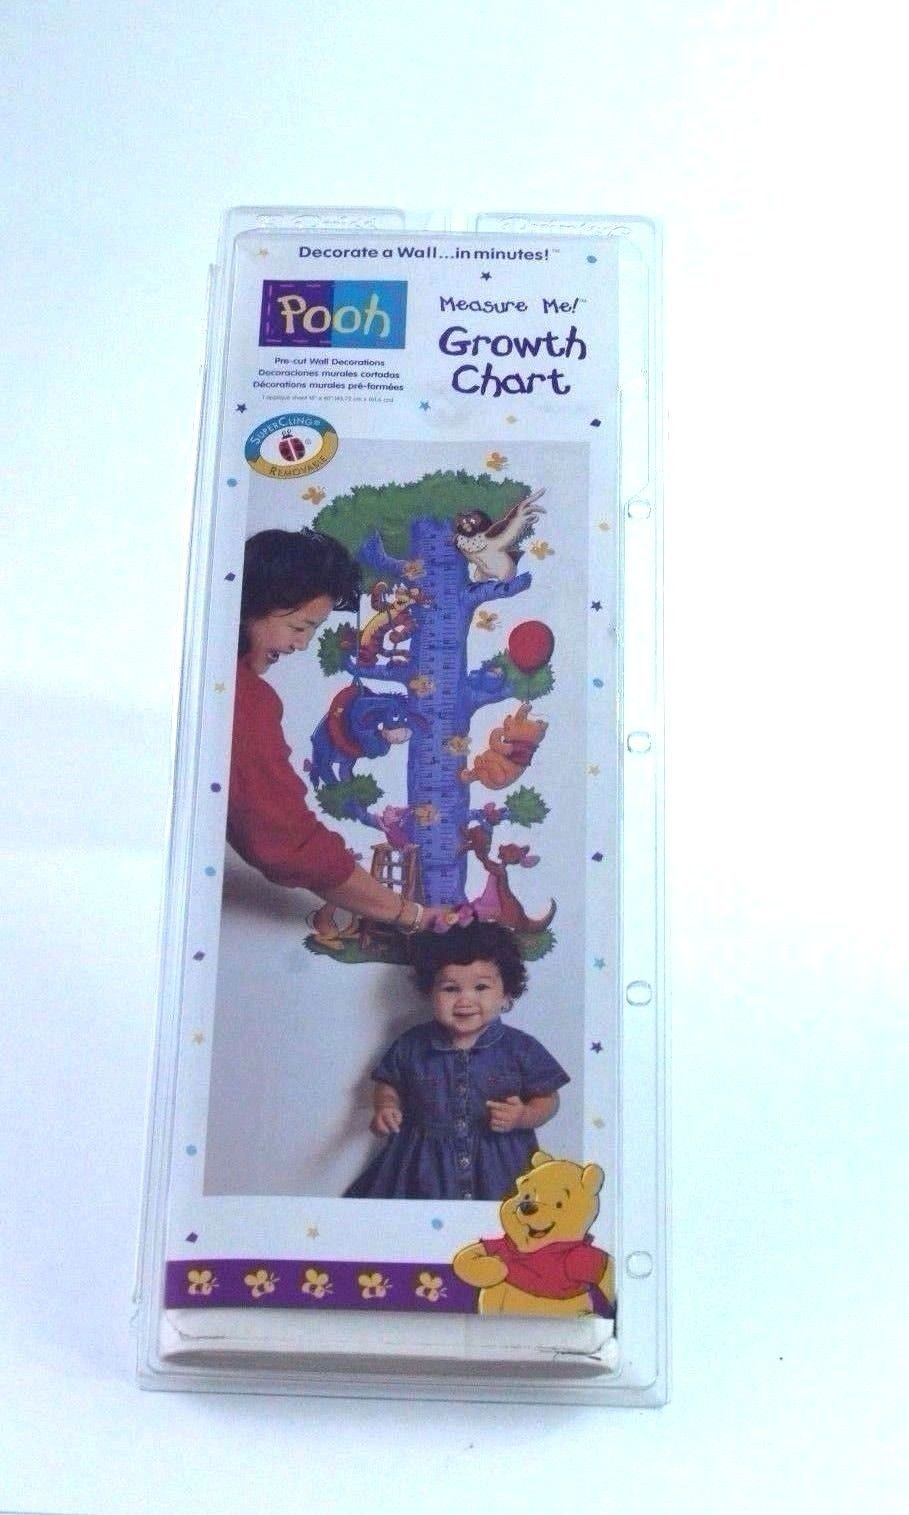 New vtg pooh bear measure me growth chart wall hanging decor new vtg pooh bear measure me growth chart wall hanging decor tigger piglet nvjuhfo Images